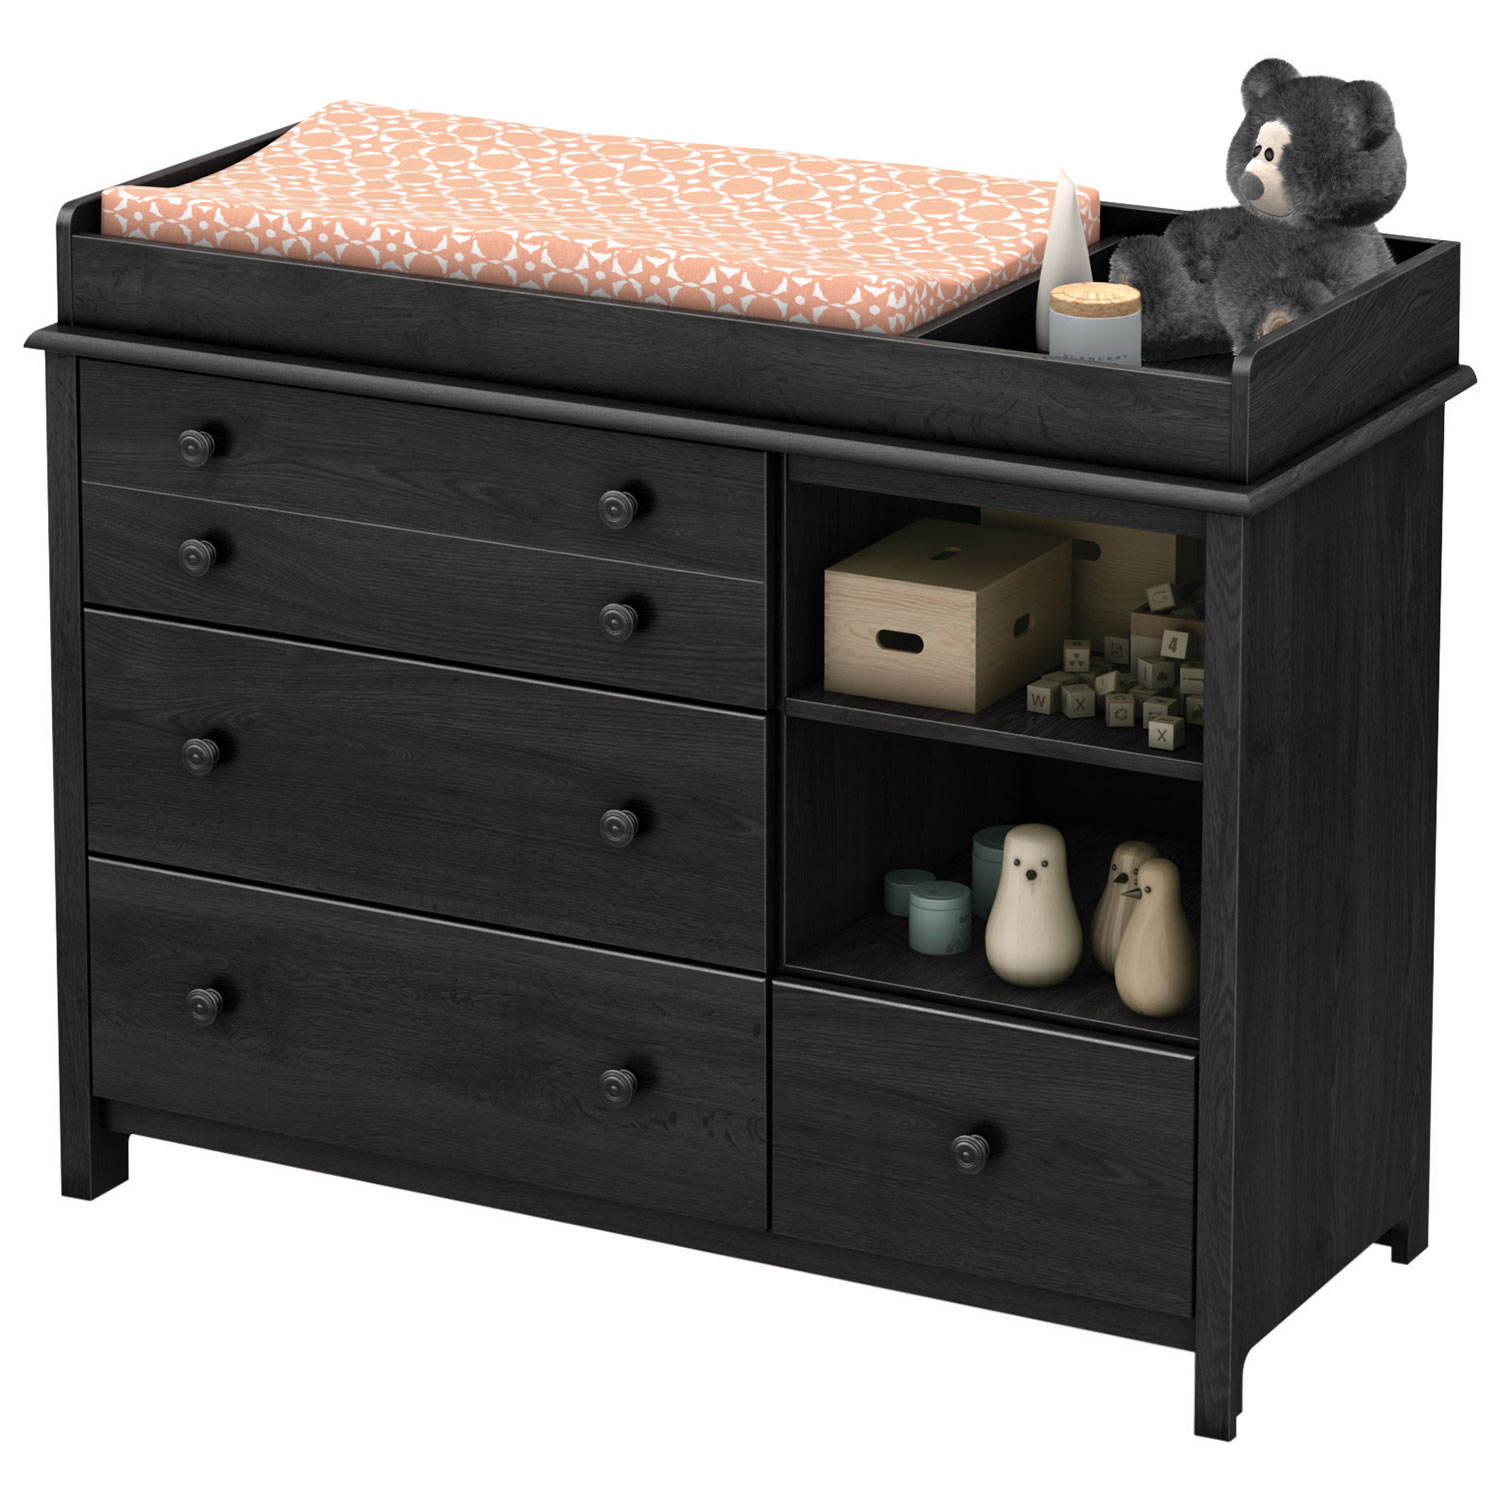 south shore little smileys changing table with removable changing  - south shore little smileys changing table with removable changing station gray oak  change tables  best buy canada